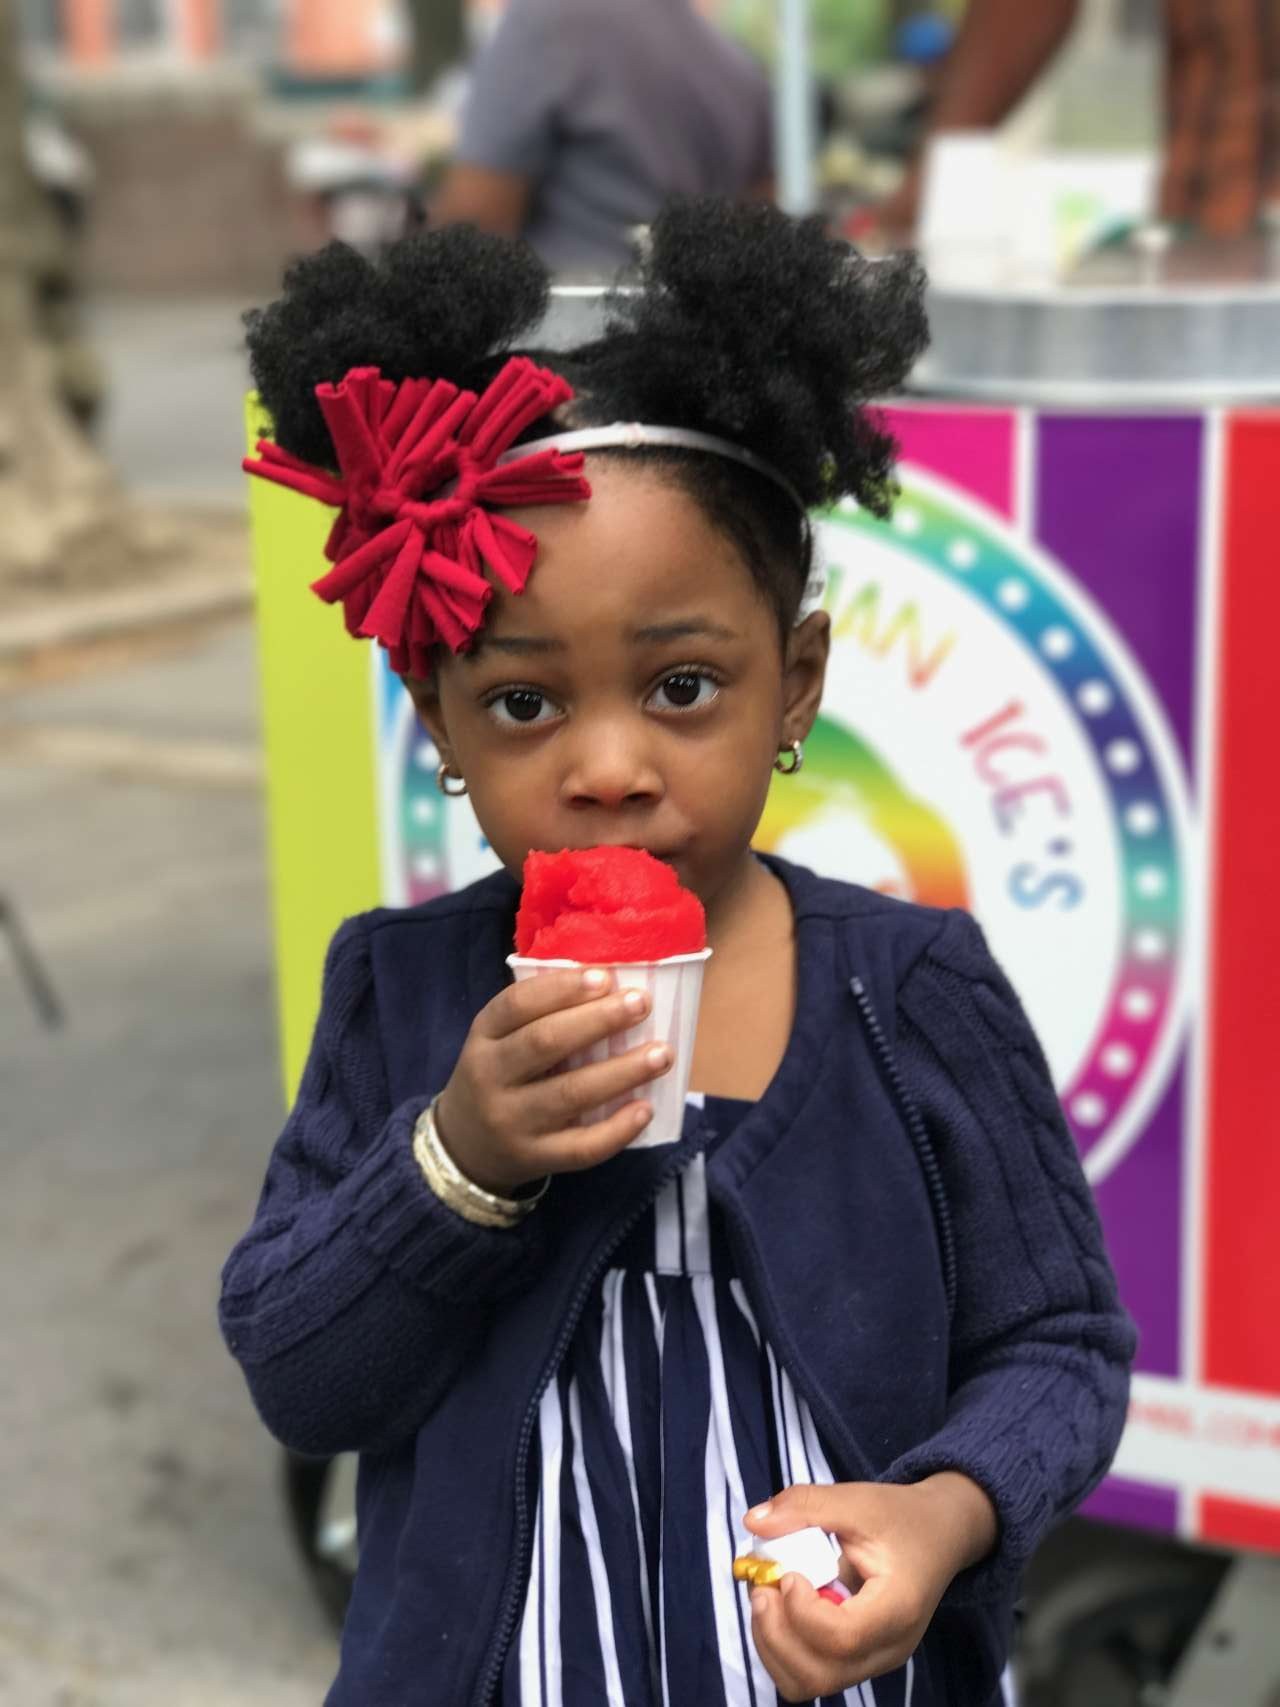 little girl with afro puff ponyails holding cherry red italian ice and wearing cherry red headband in front of rainbow italian ice cart